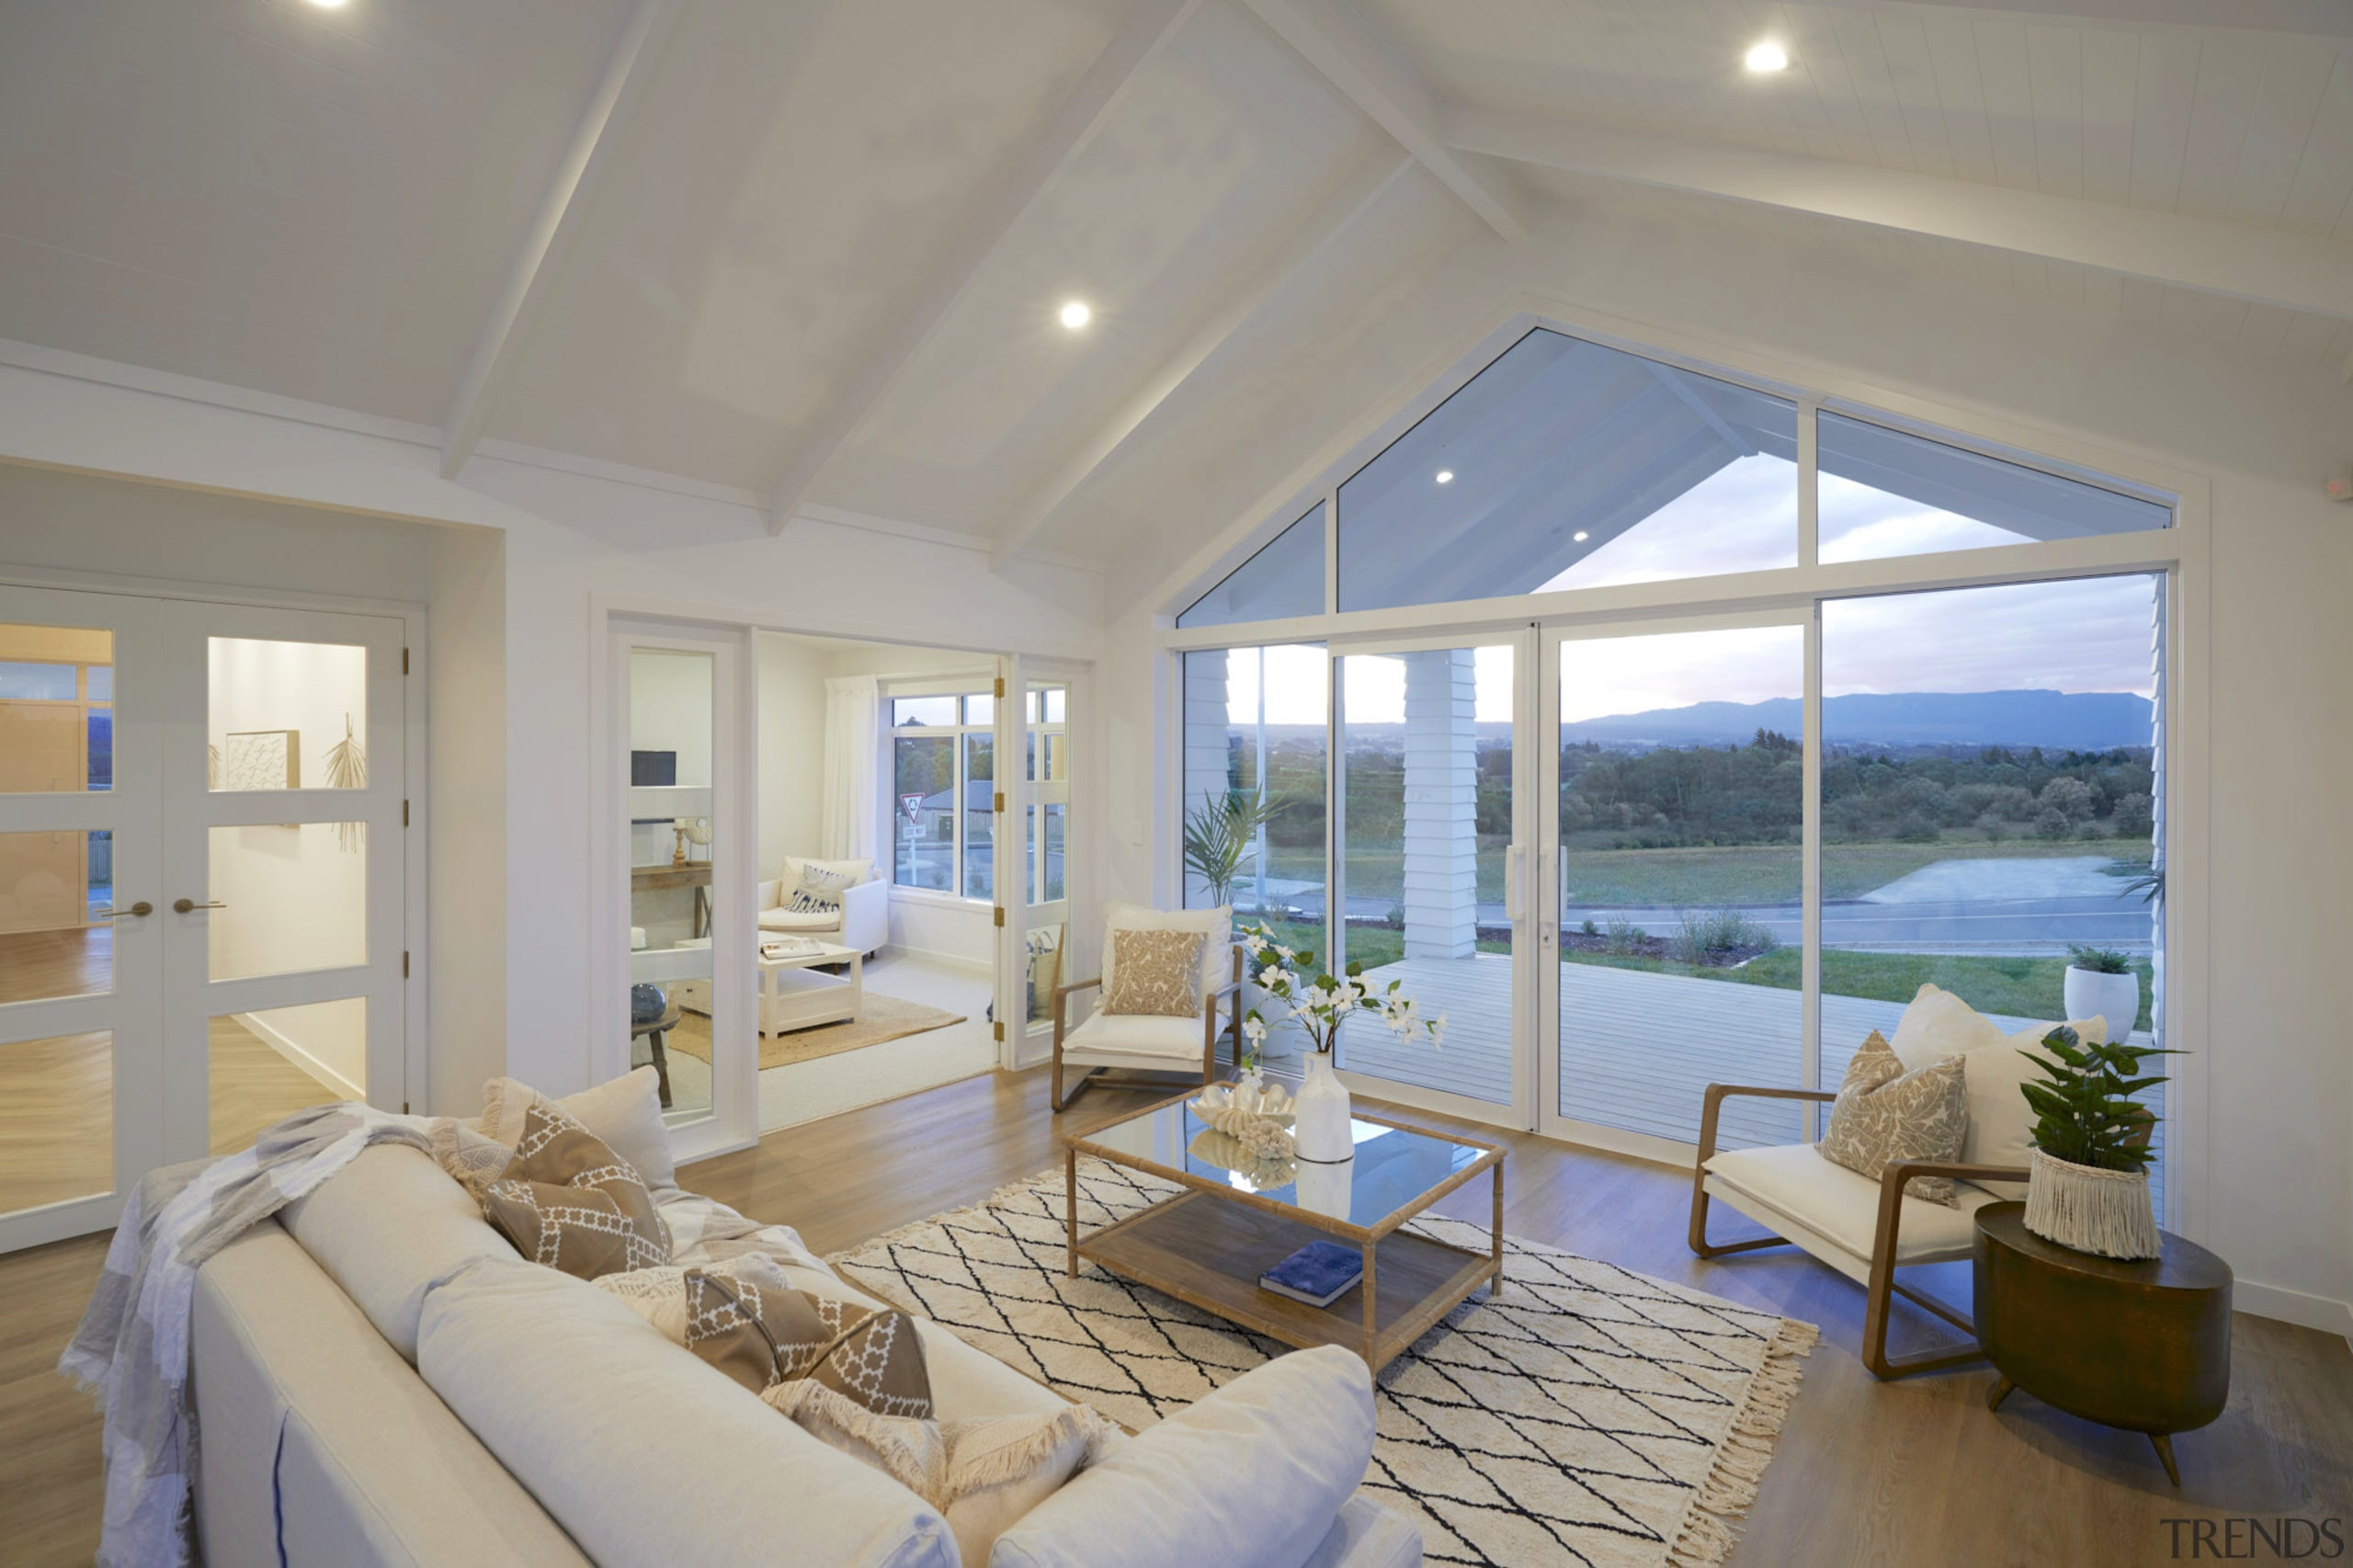 The gabled roofline translates into a soaring ceiling